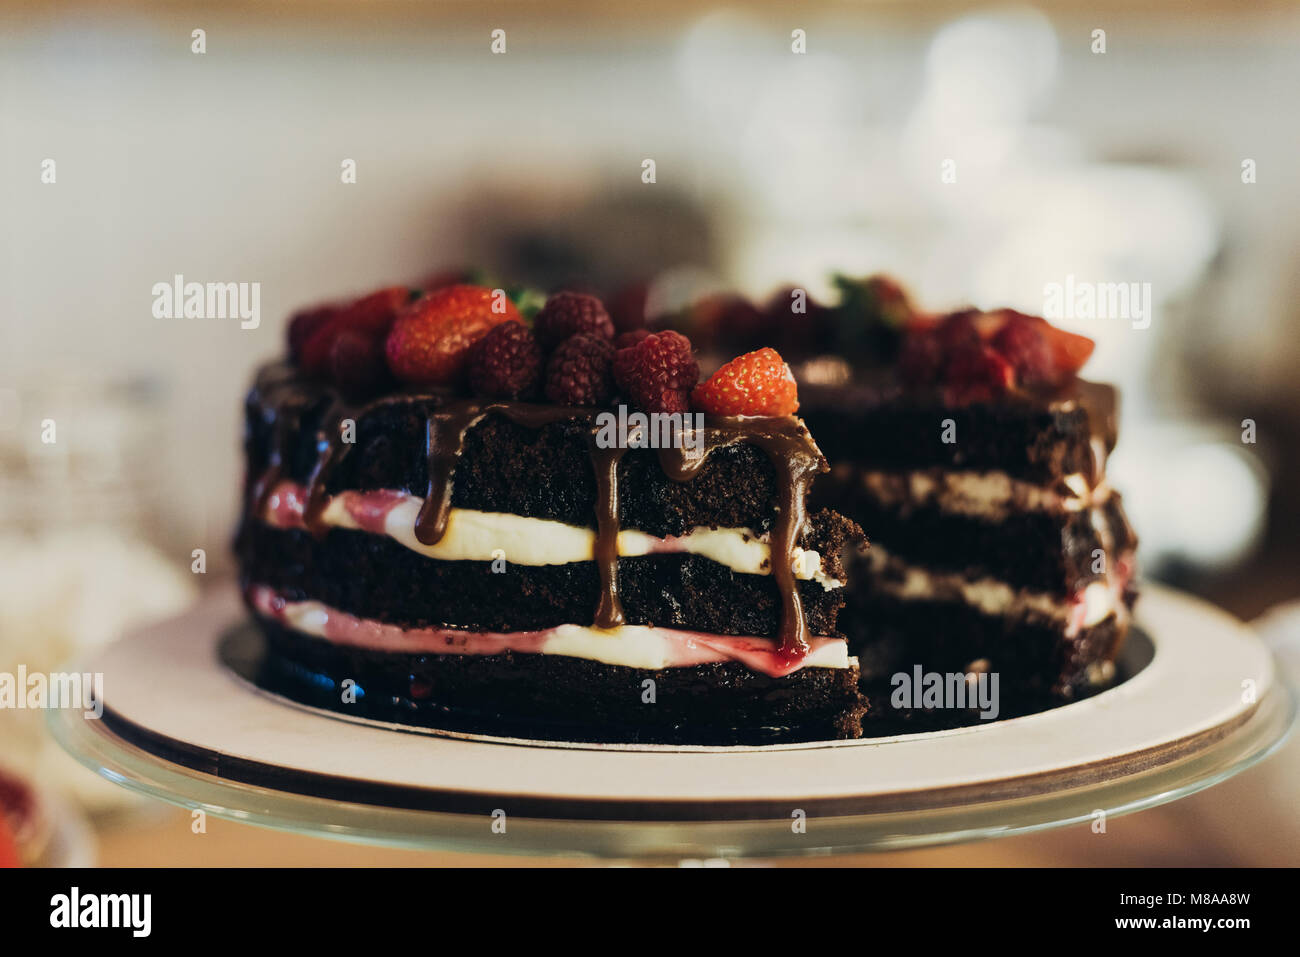 chocolate cake with fruits  - Stock Image